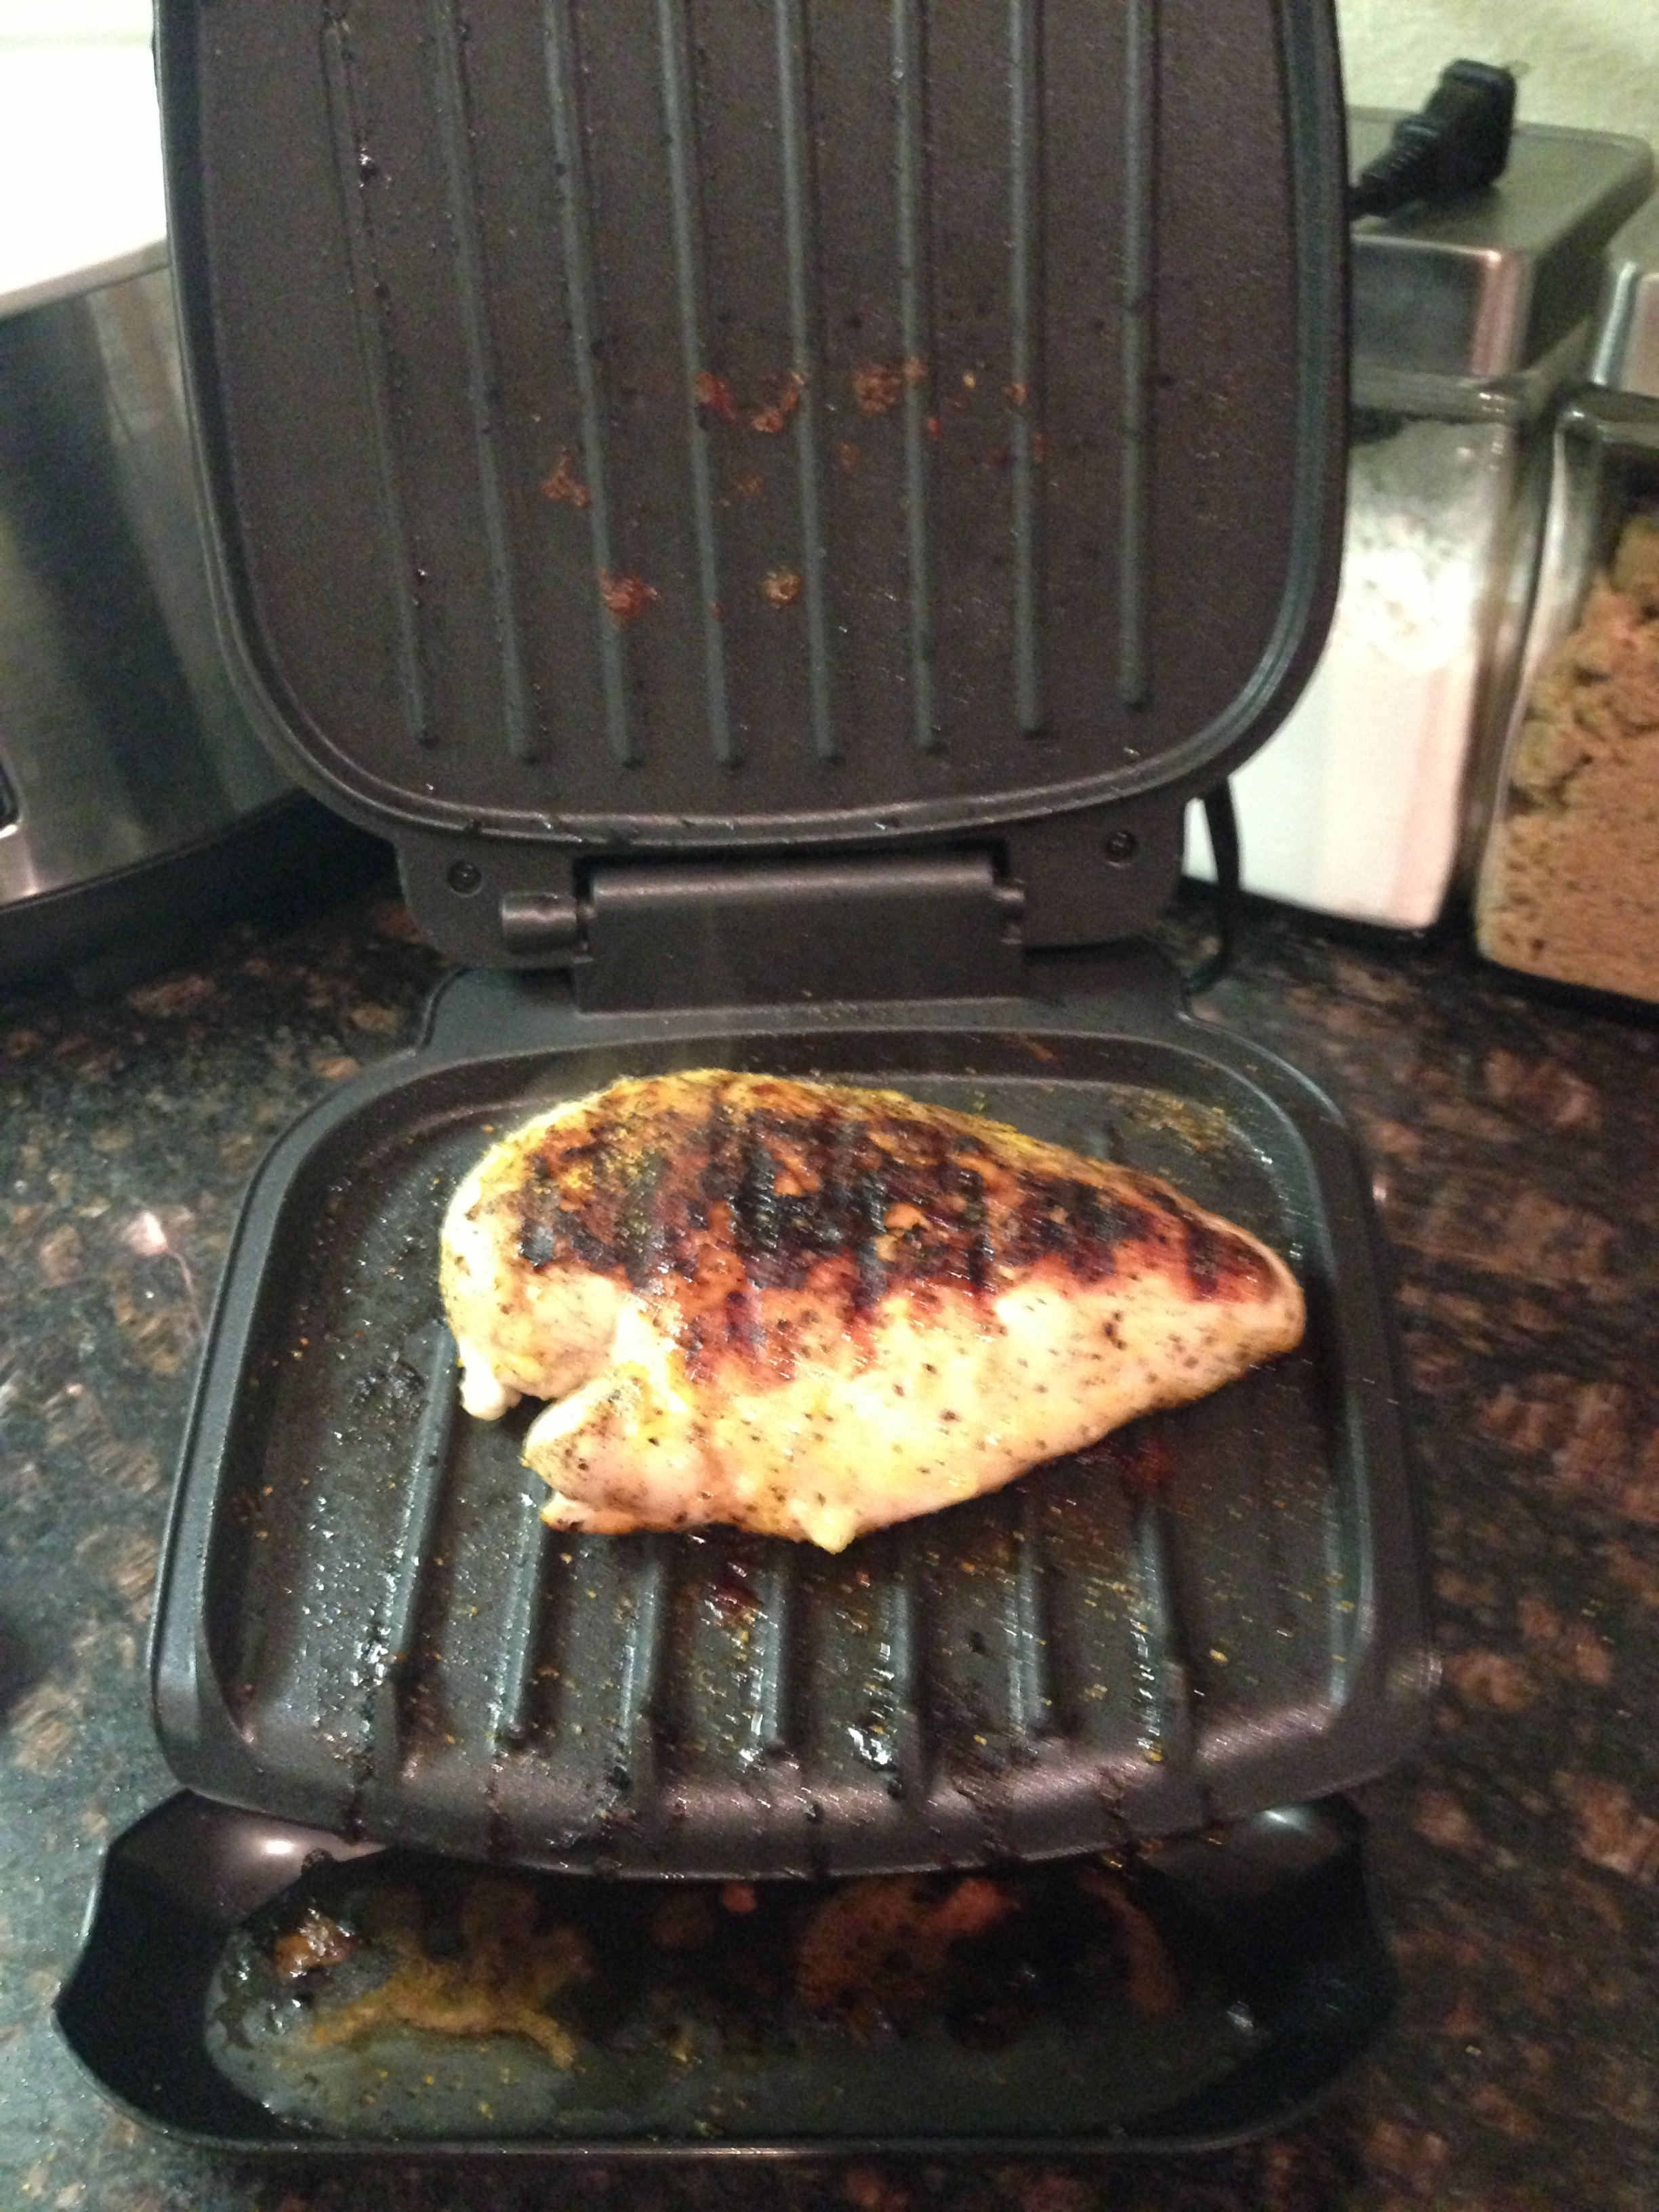 Chicken on the inside grill back in dallas for George foreman grill fish